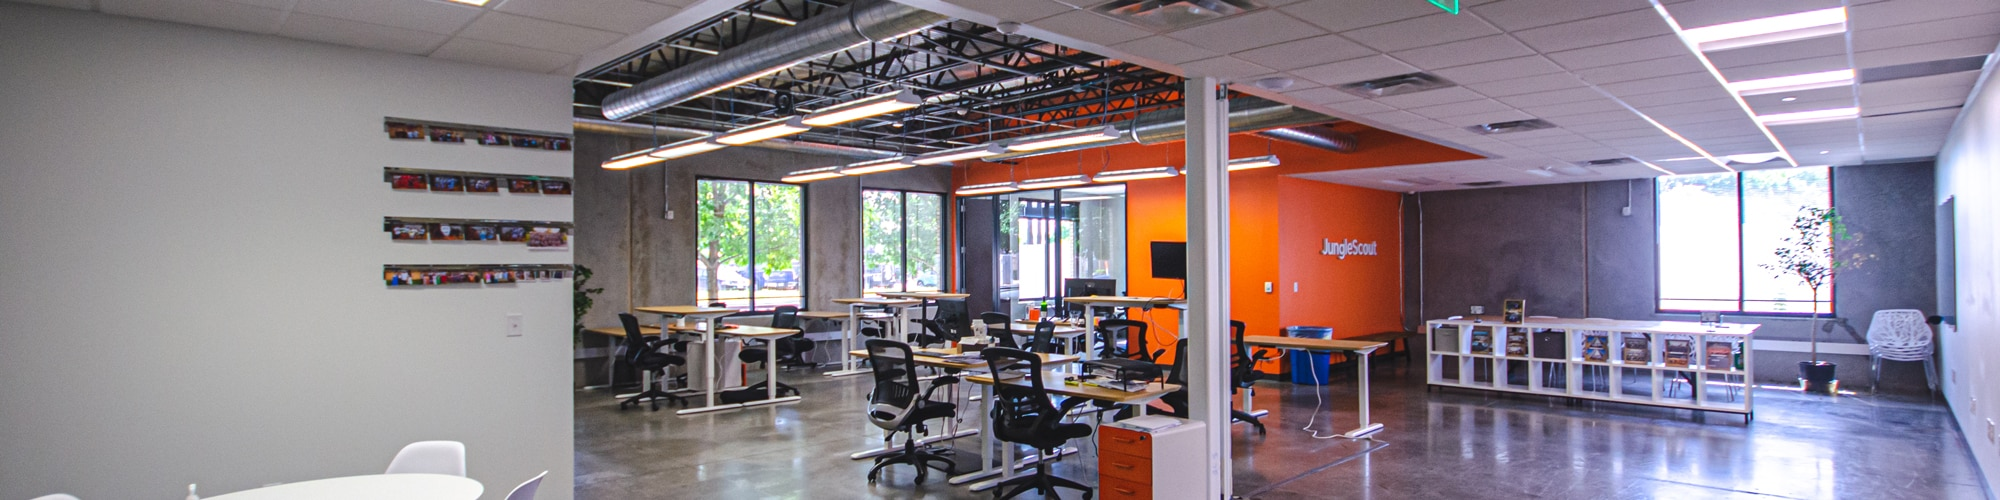 2021 East 5th Street - Office Space for Sublease in East Austin